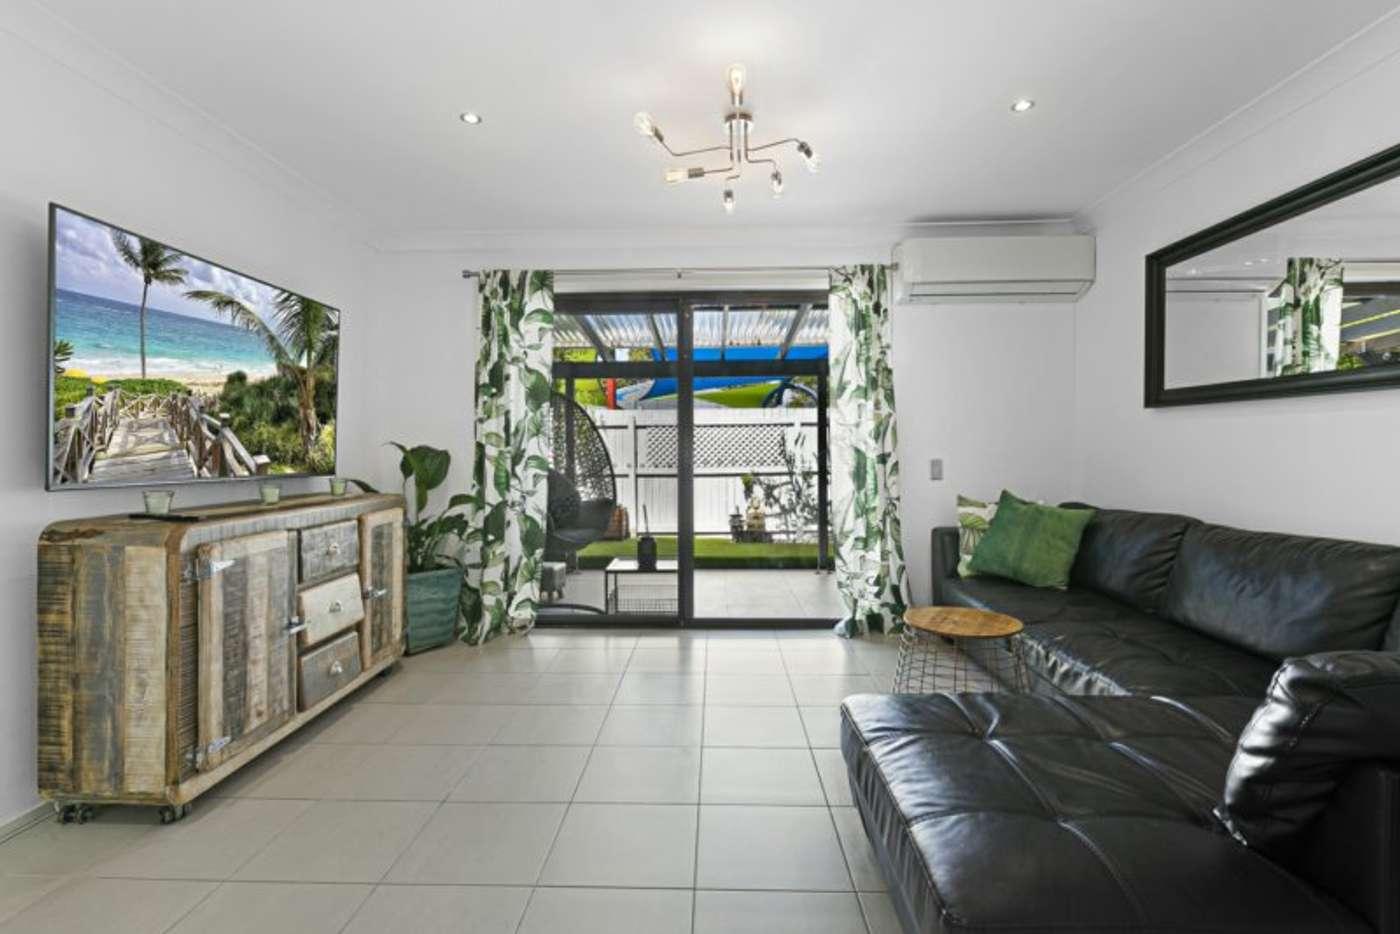 Sixth view of Homely townhouse listing, Address available on request